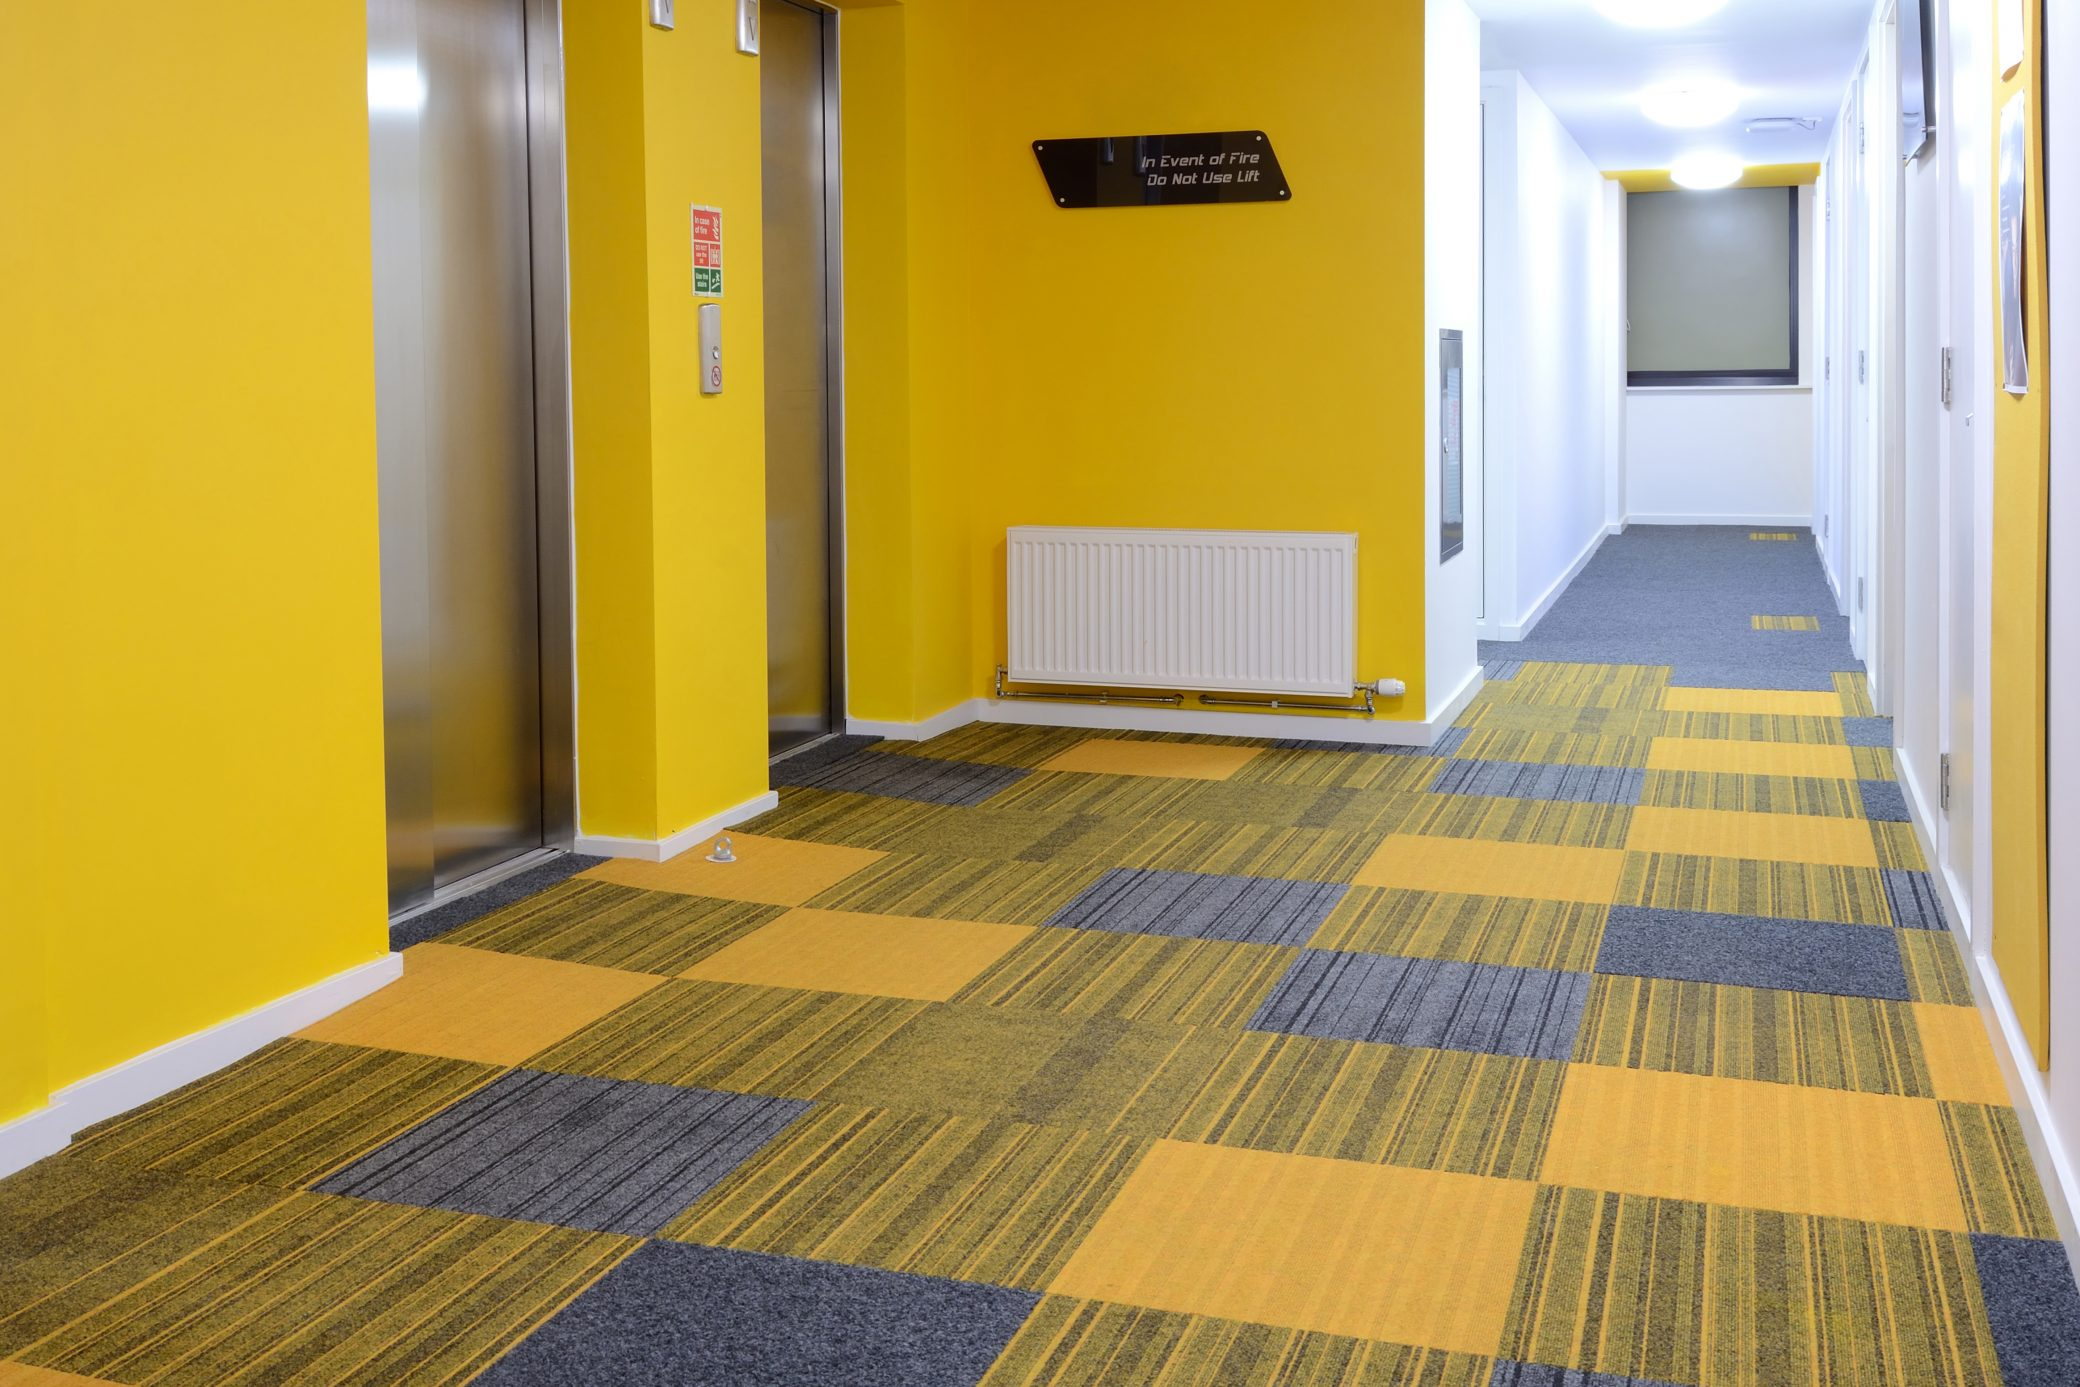 Carpet Connection - Commercial and Office Carpets in Suffolk & Essex